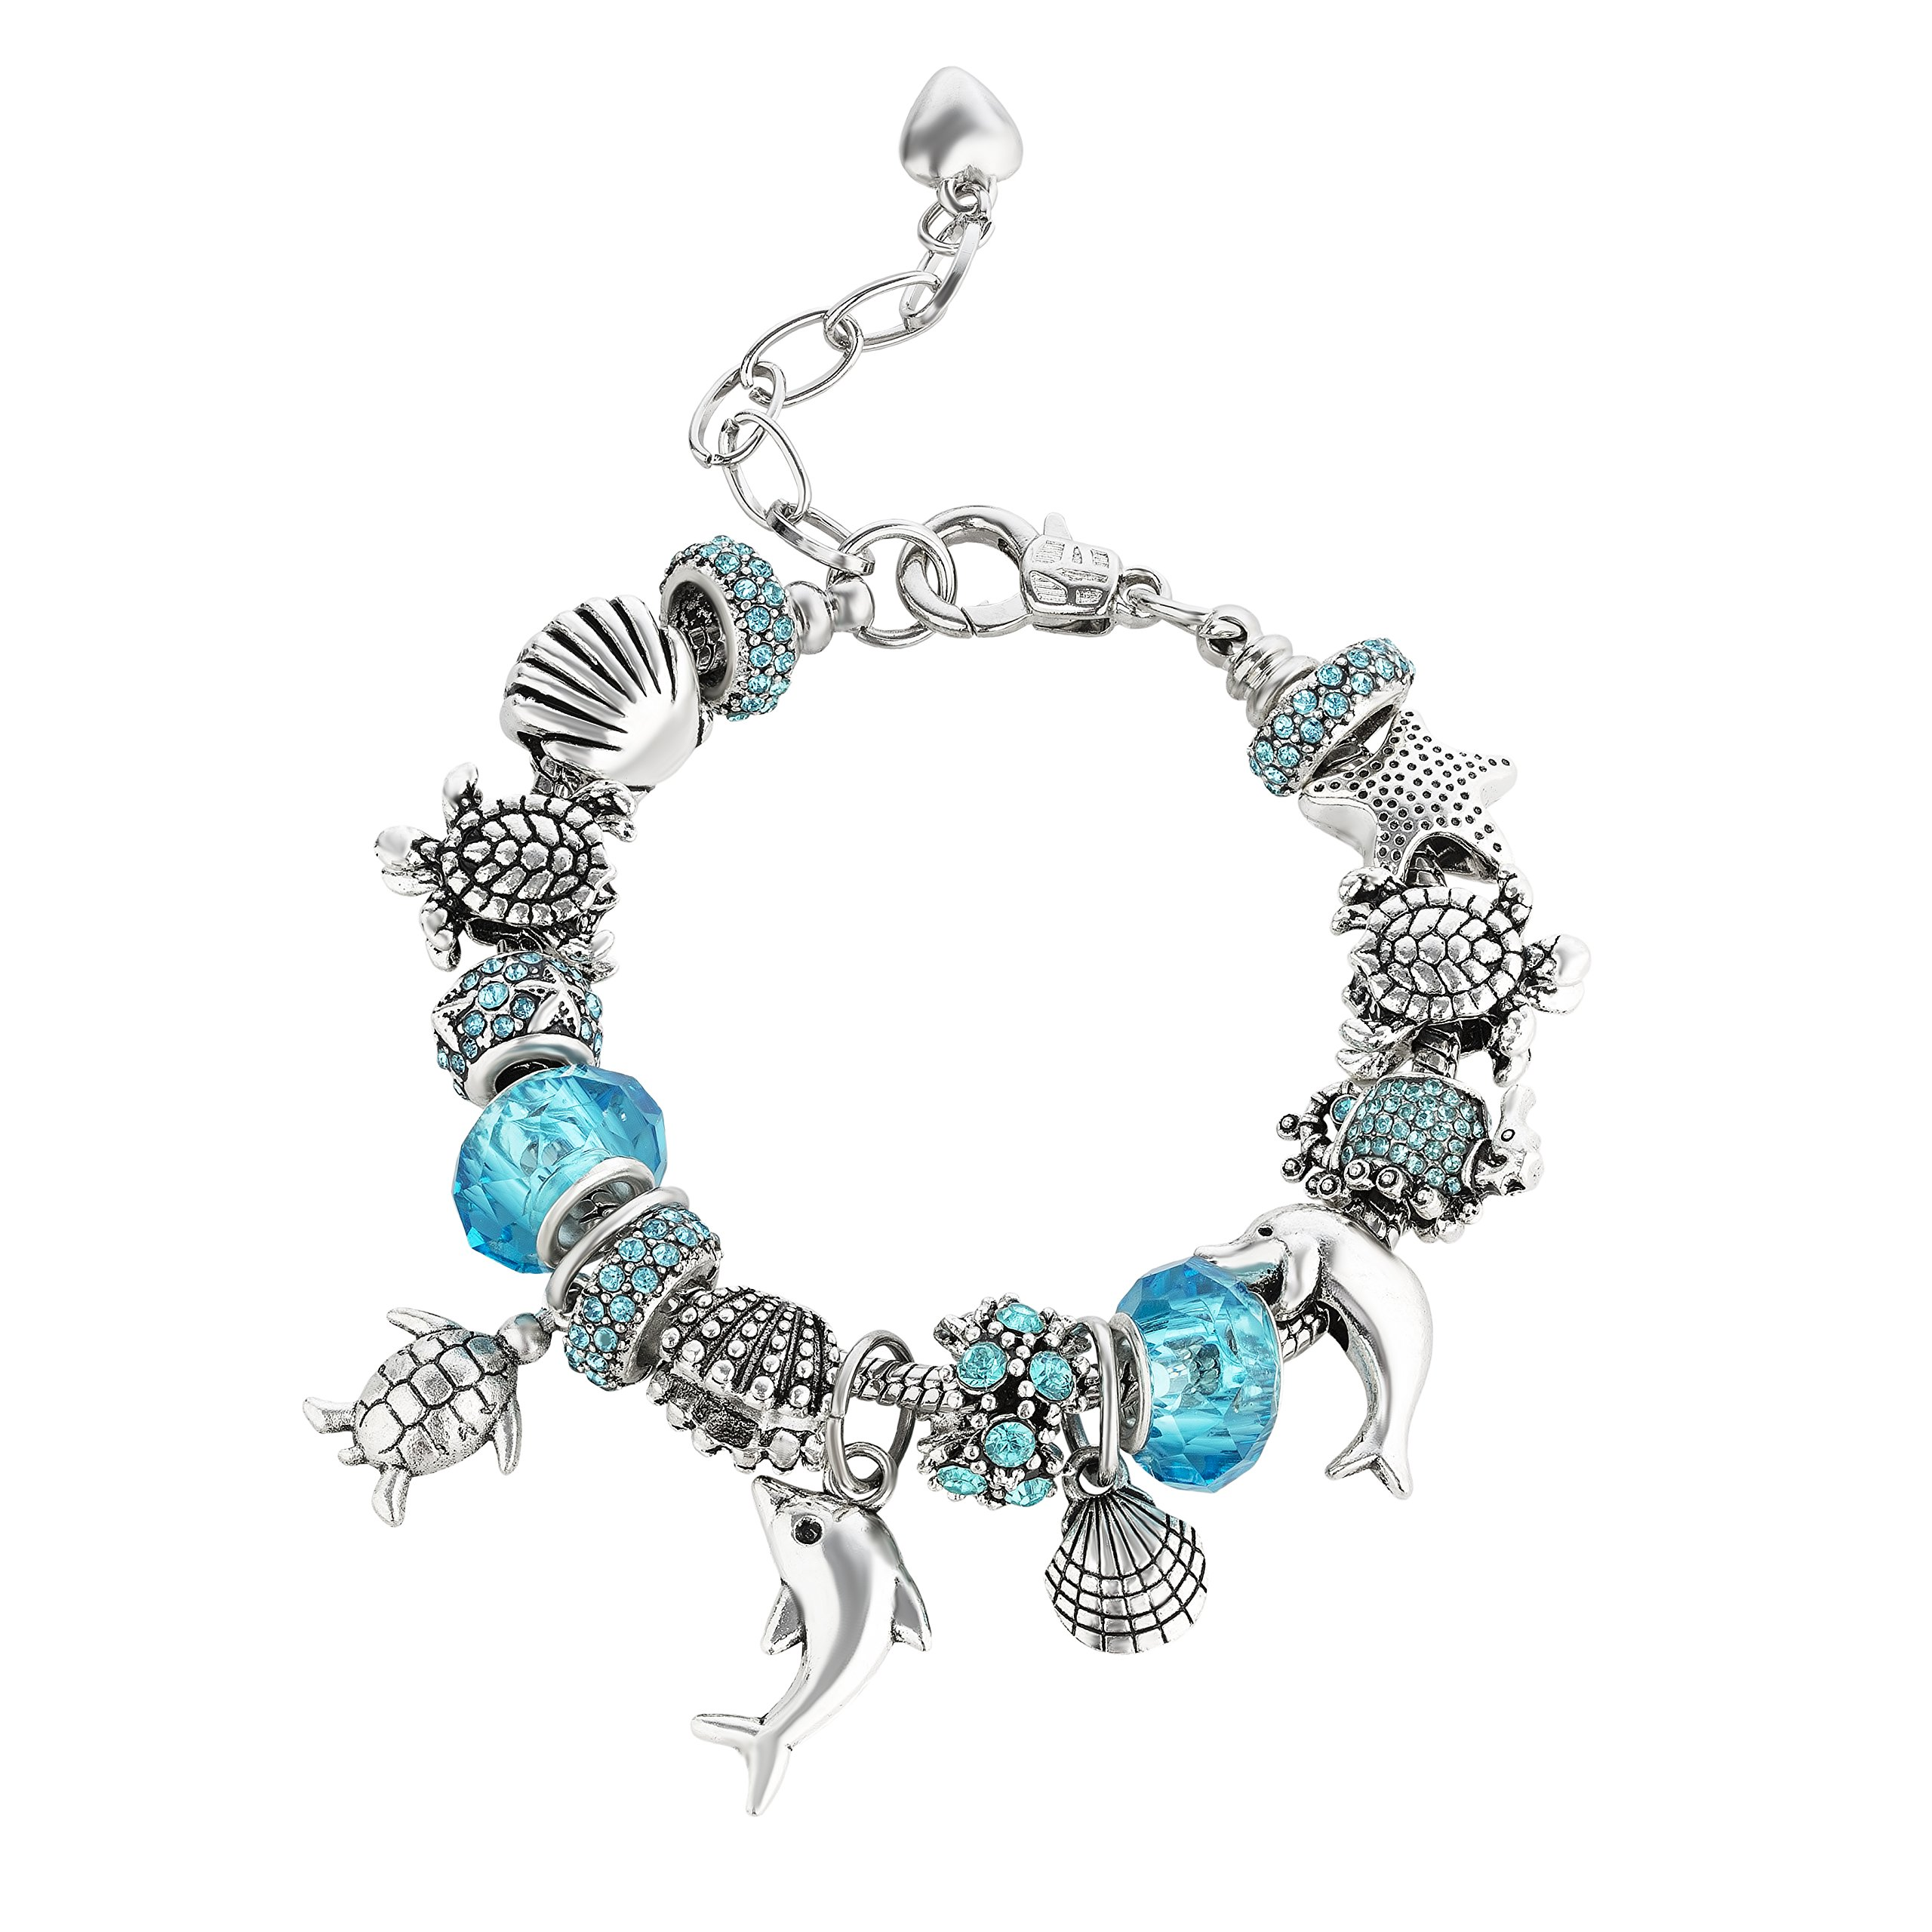 Majesto Blue Dolphin Turtle Beaded Charm Bracelets for Teen Girls Women Gifts Adjustable Fits 6-8.5 inch